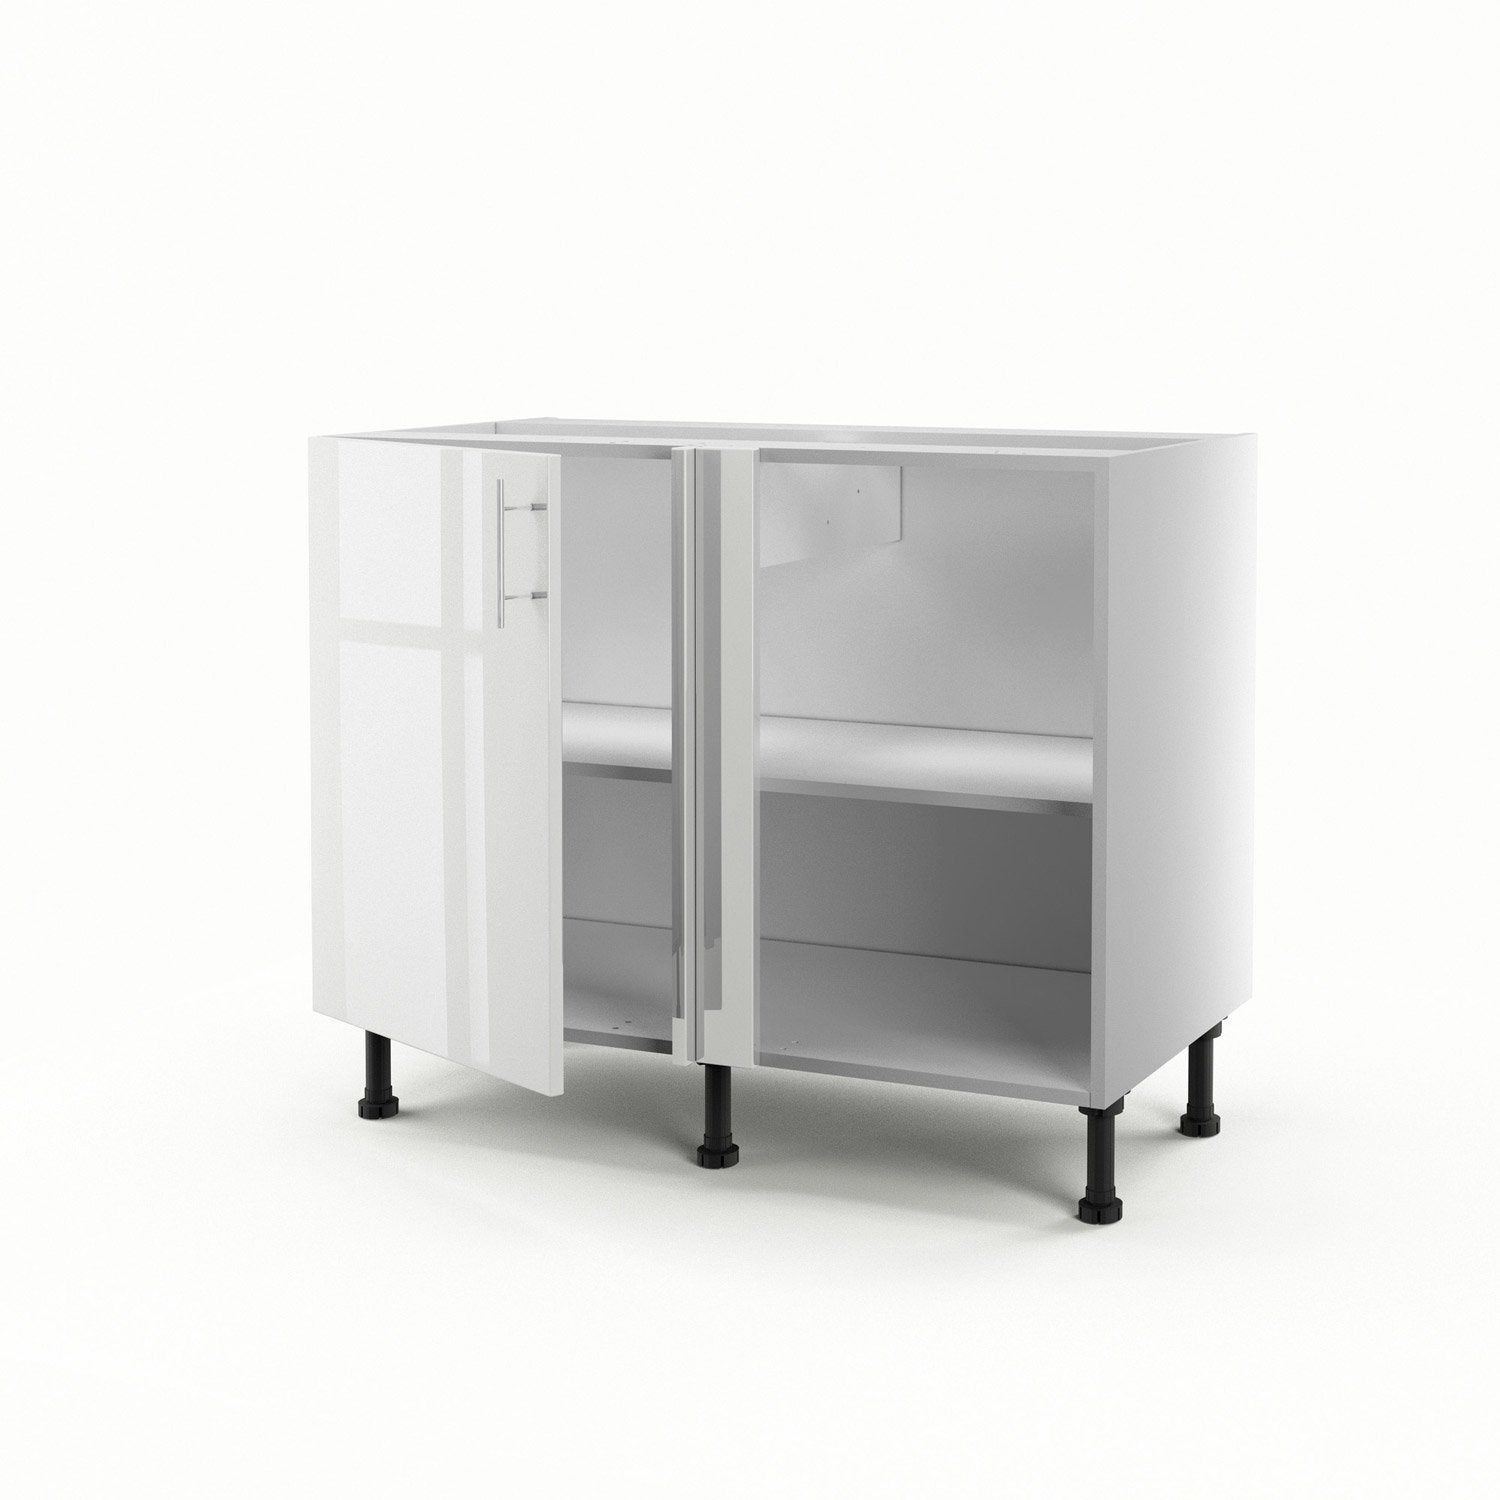 meuble de cuisine bas d 39 angle blanc 1 porte rio h70xl100xp56 cm leroy merlin. Black Bedroom Furniture Sets. Home Design Ideas